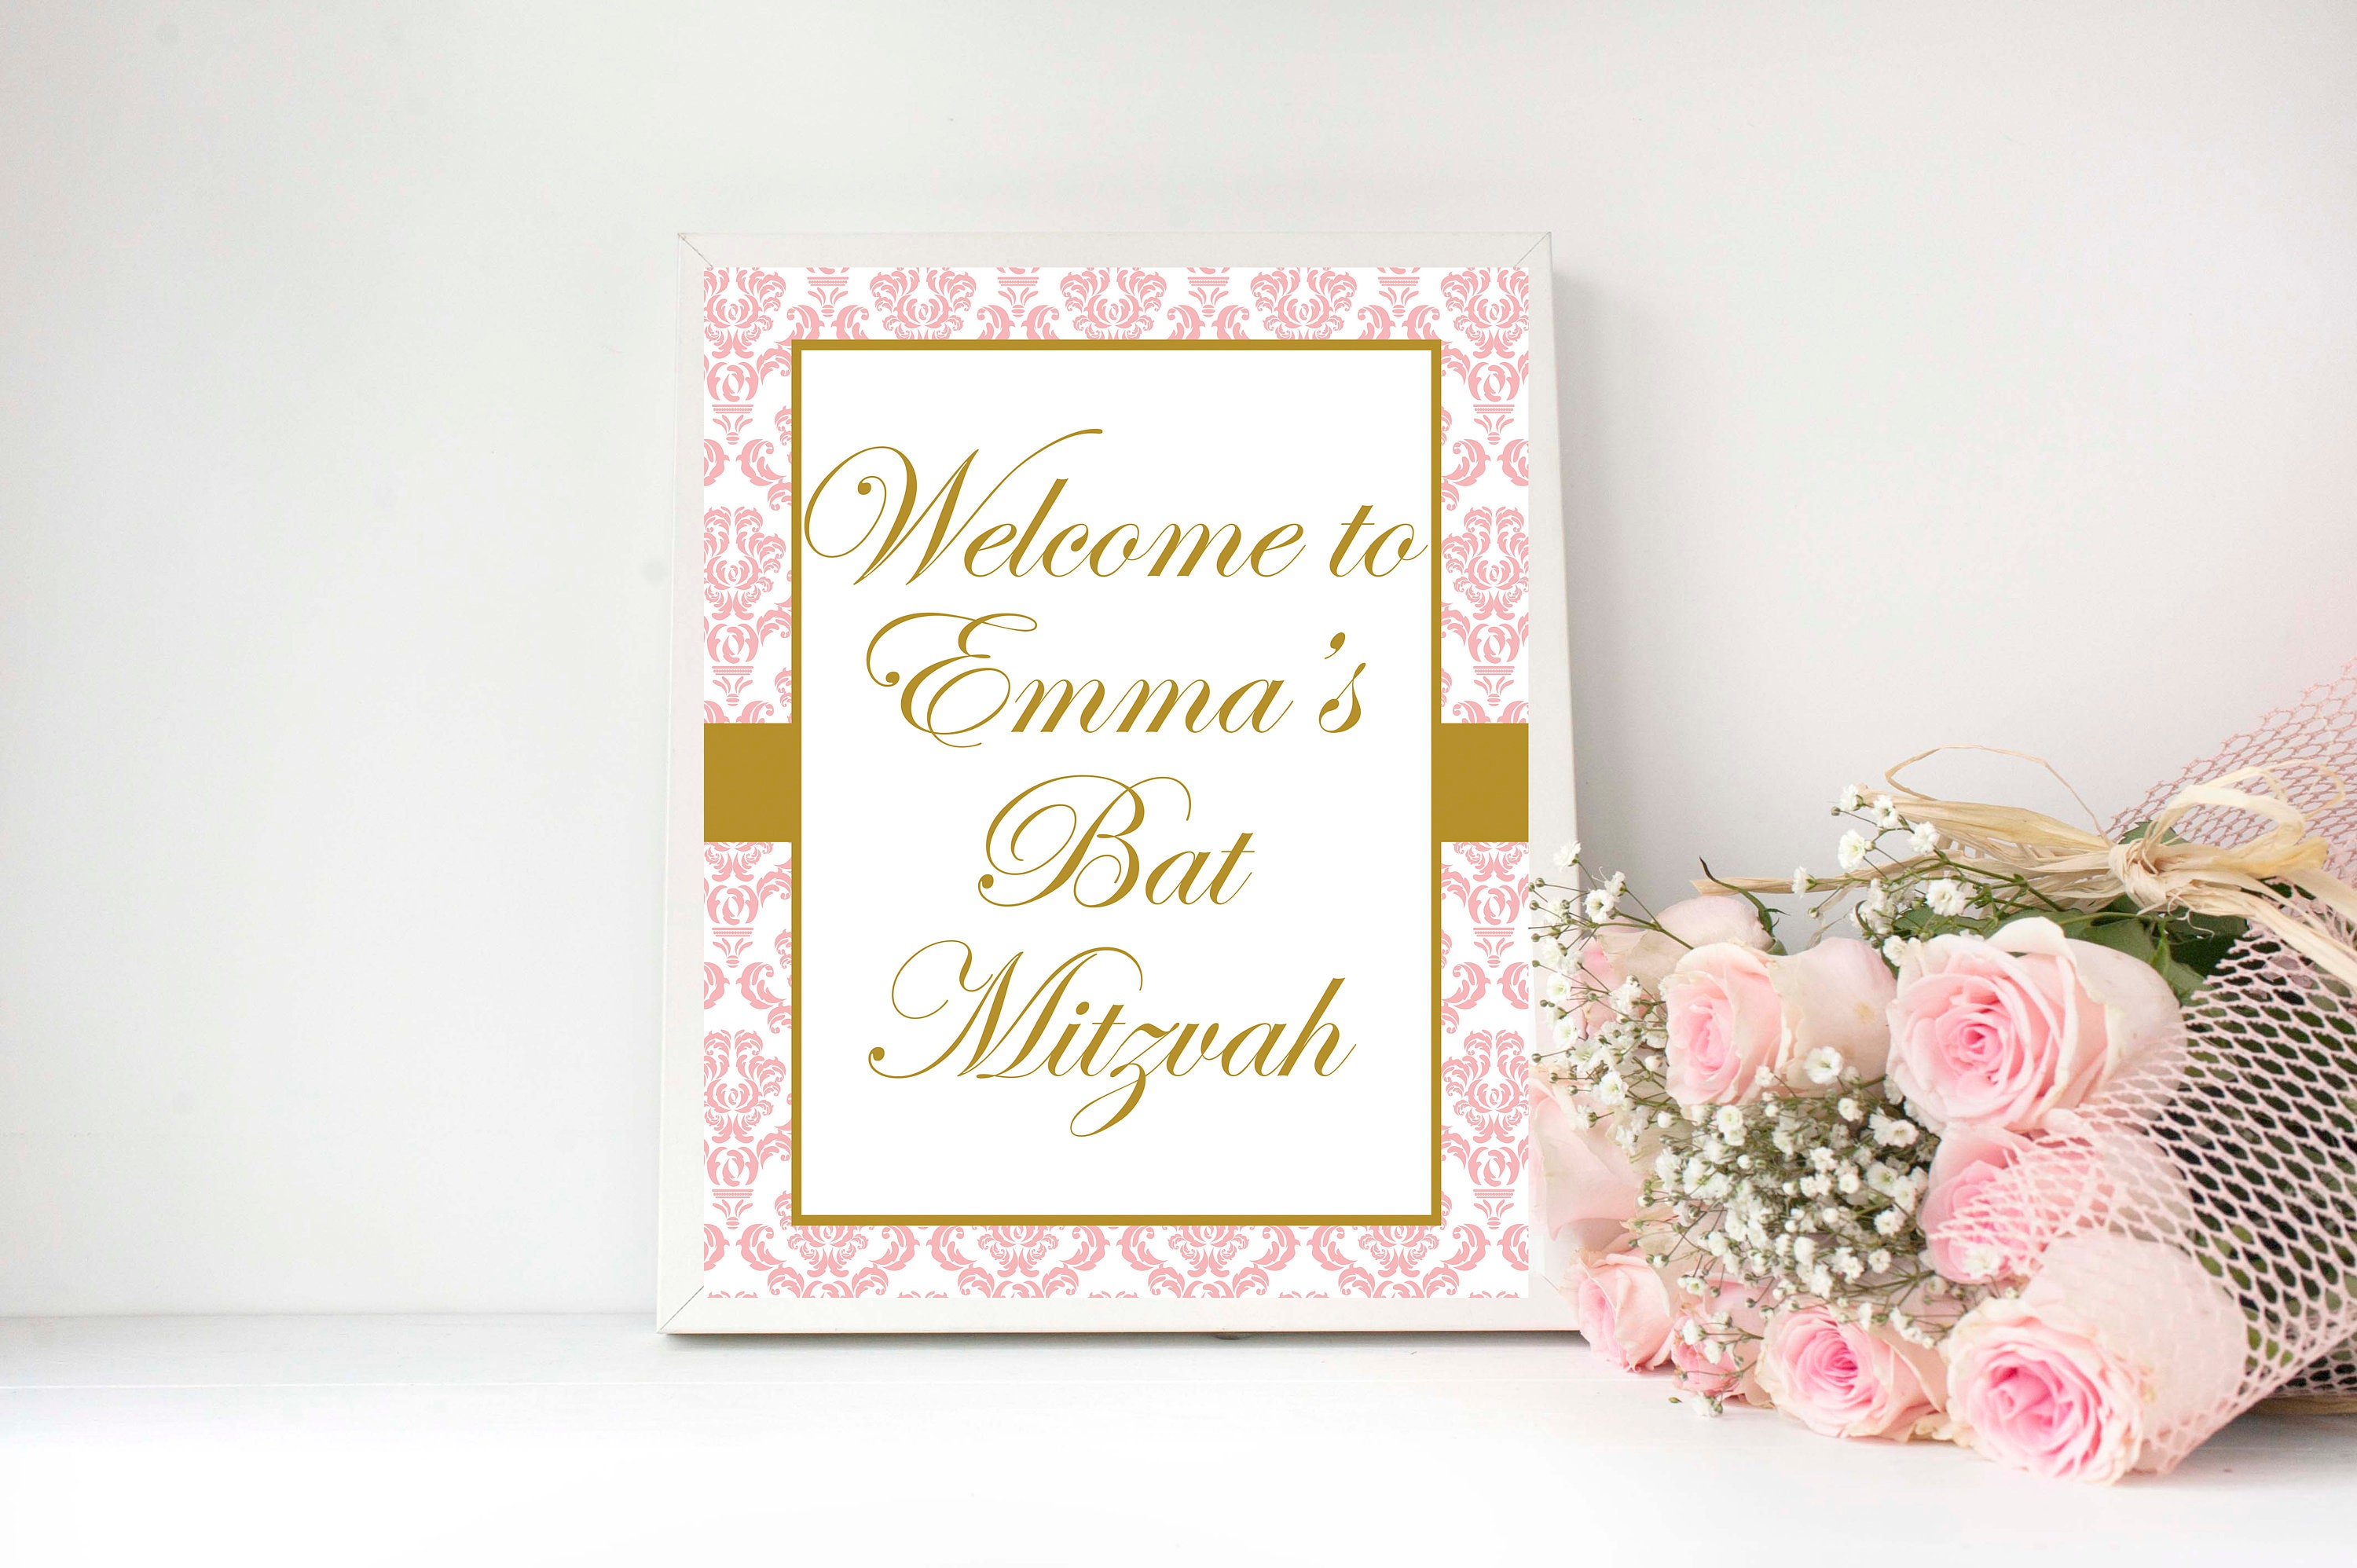 Bat Mitzvah Bat Mitzvah Decoration Bat Mitzvah Welcome Sign Etsy